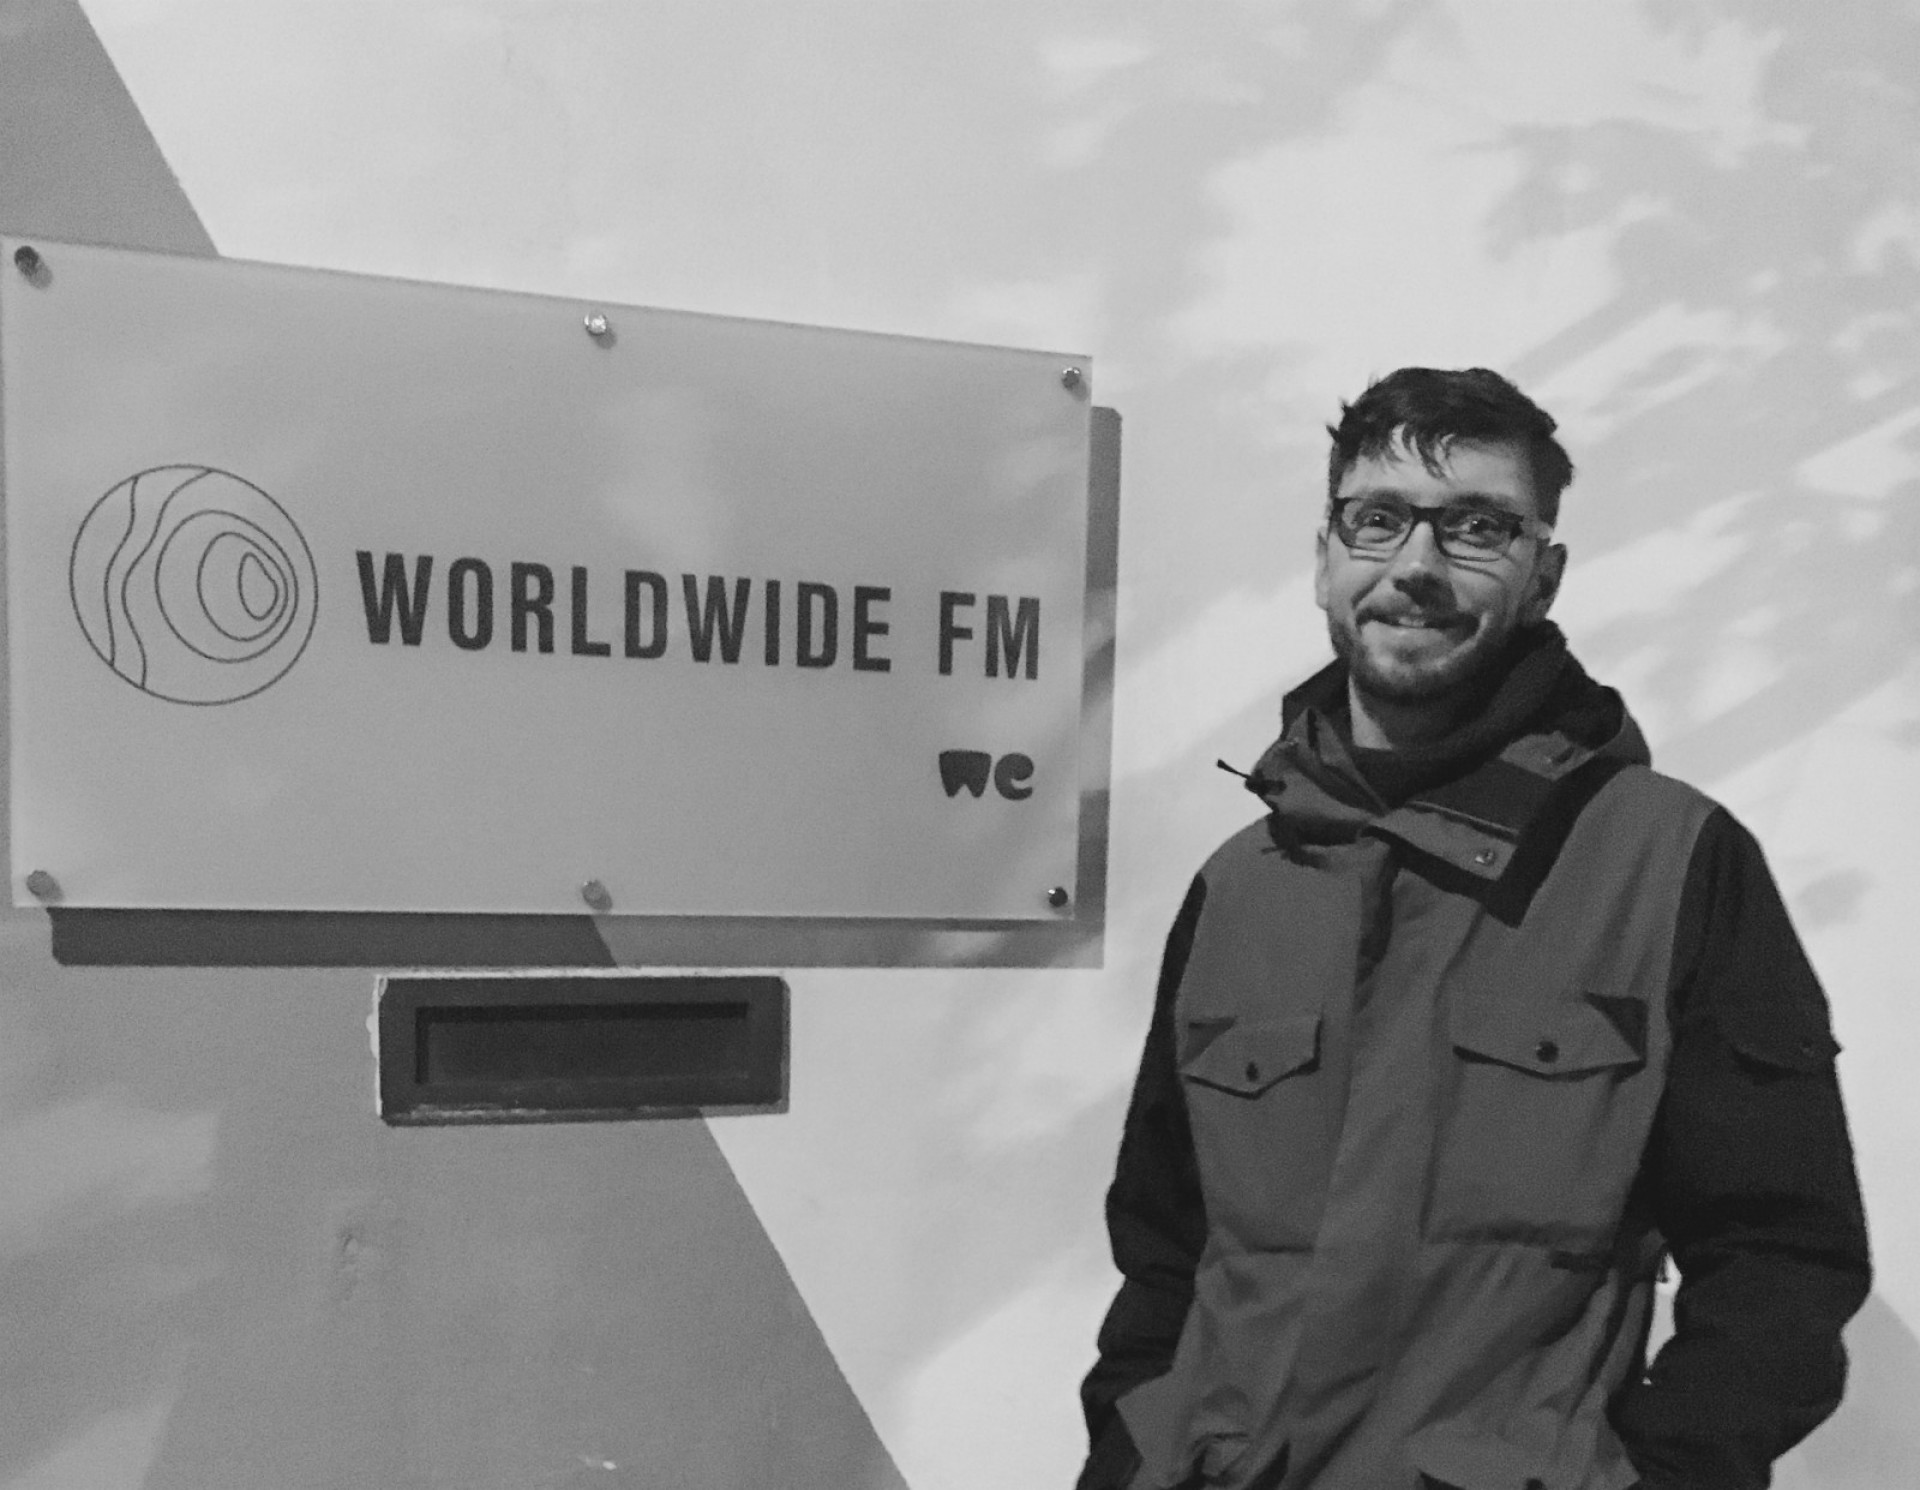 Worldwide FM: Liz Aku & Mr. Leenknecht